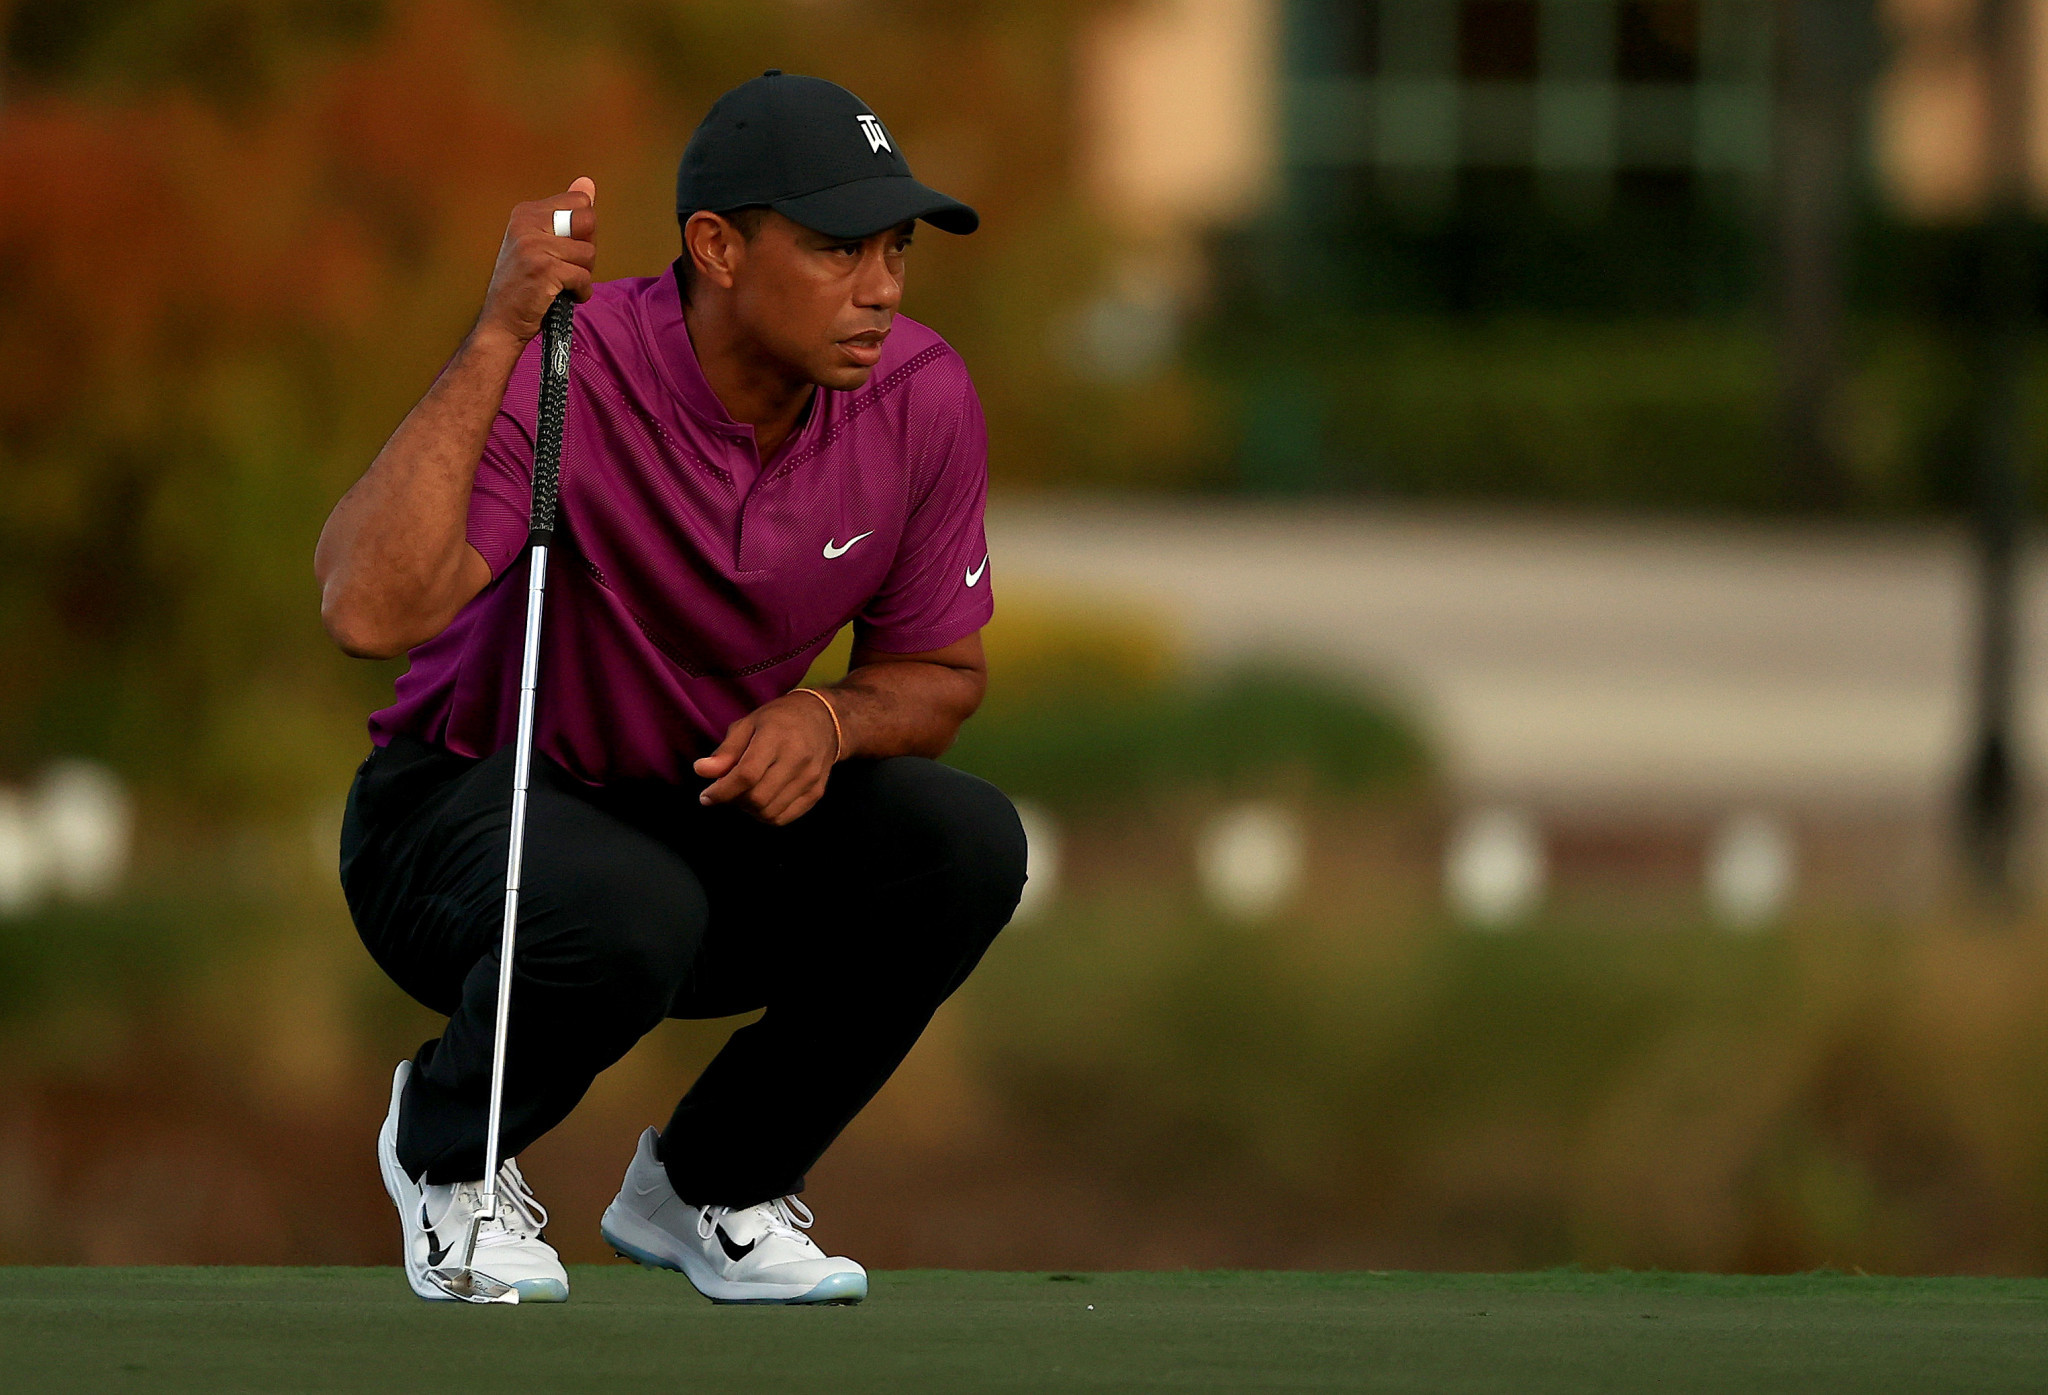 Tiger Woods suffered multiple fractures to his right leg, as well as ankle and foot injuries, leaving his future as a golfer in jeopardy ©Getty Images